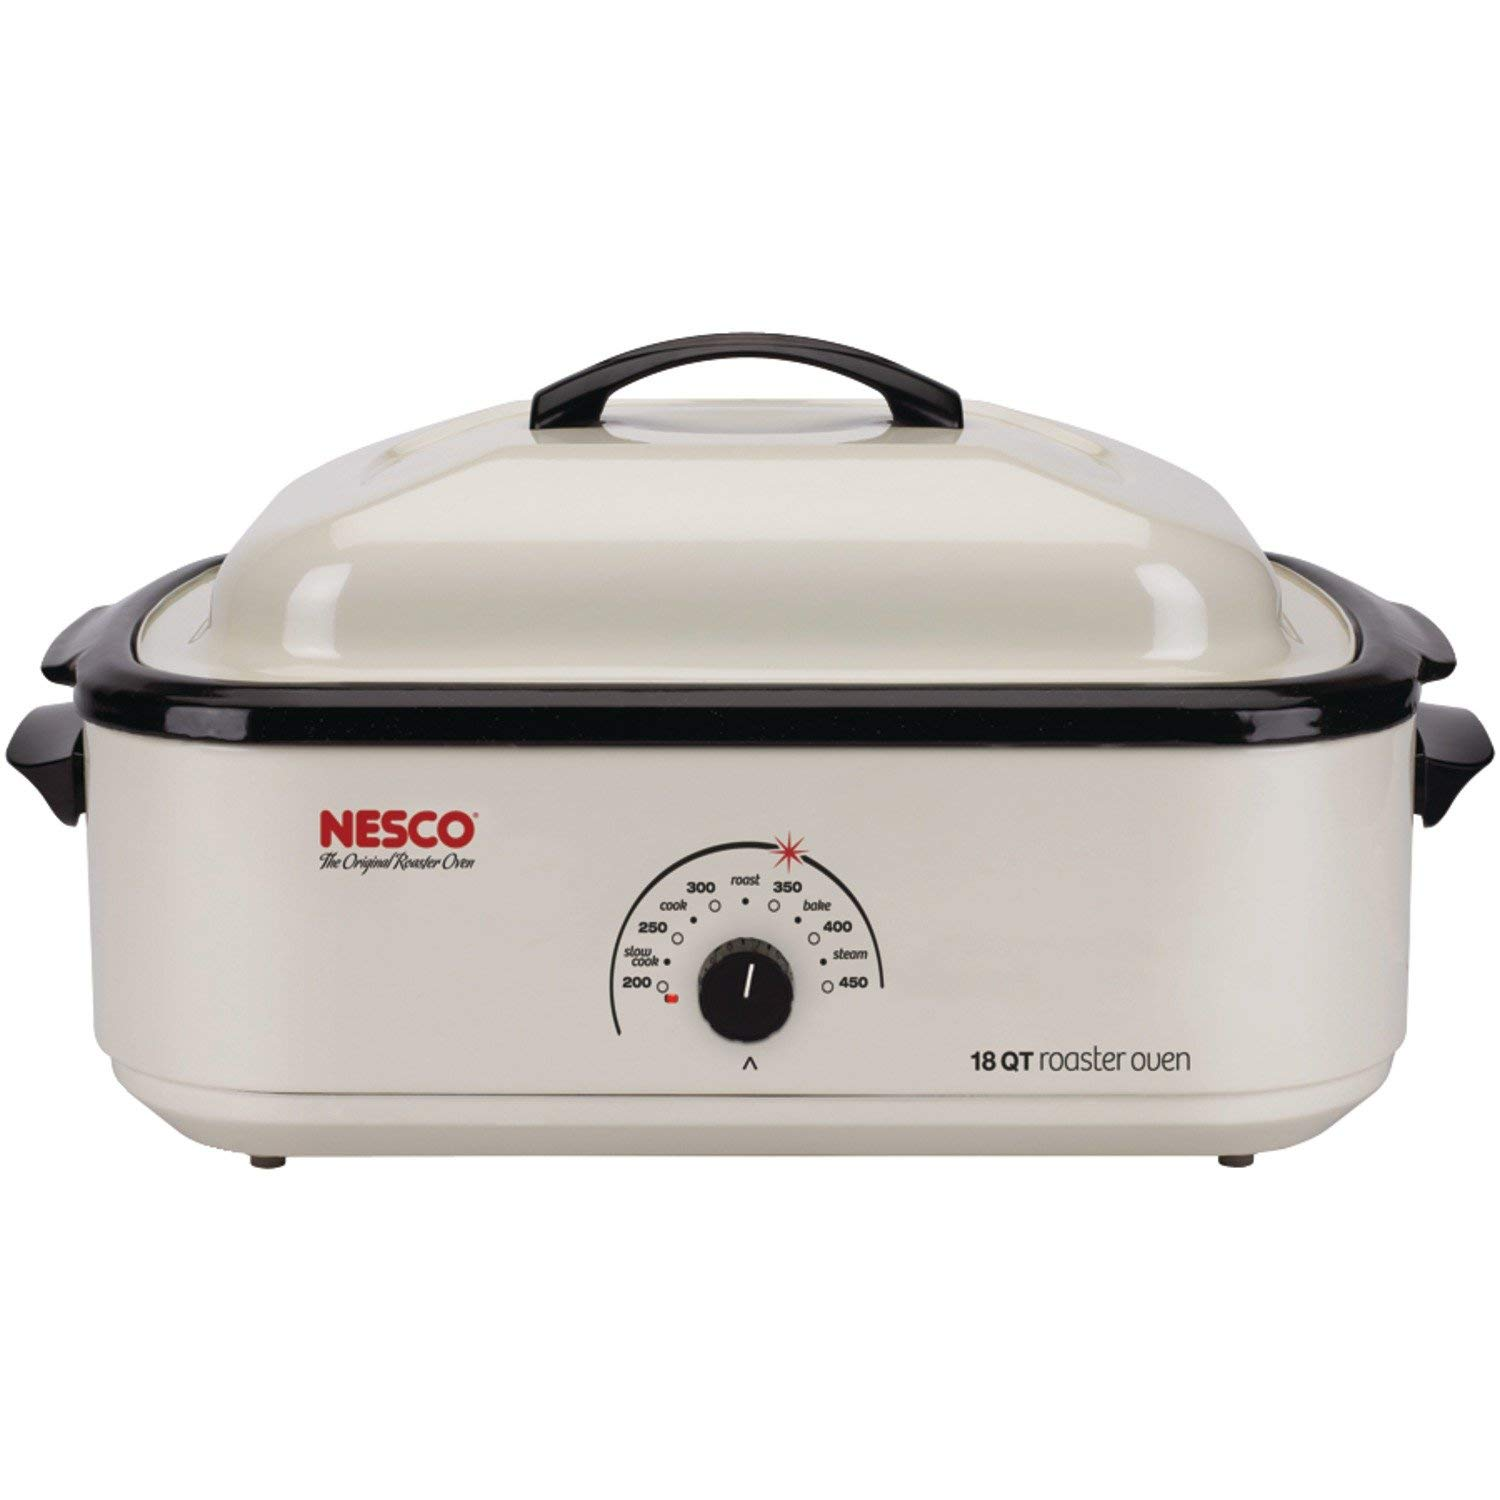 Nesco Roaster Oven Reviews